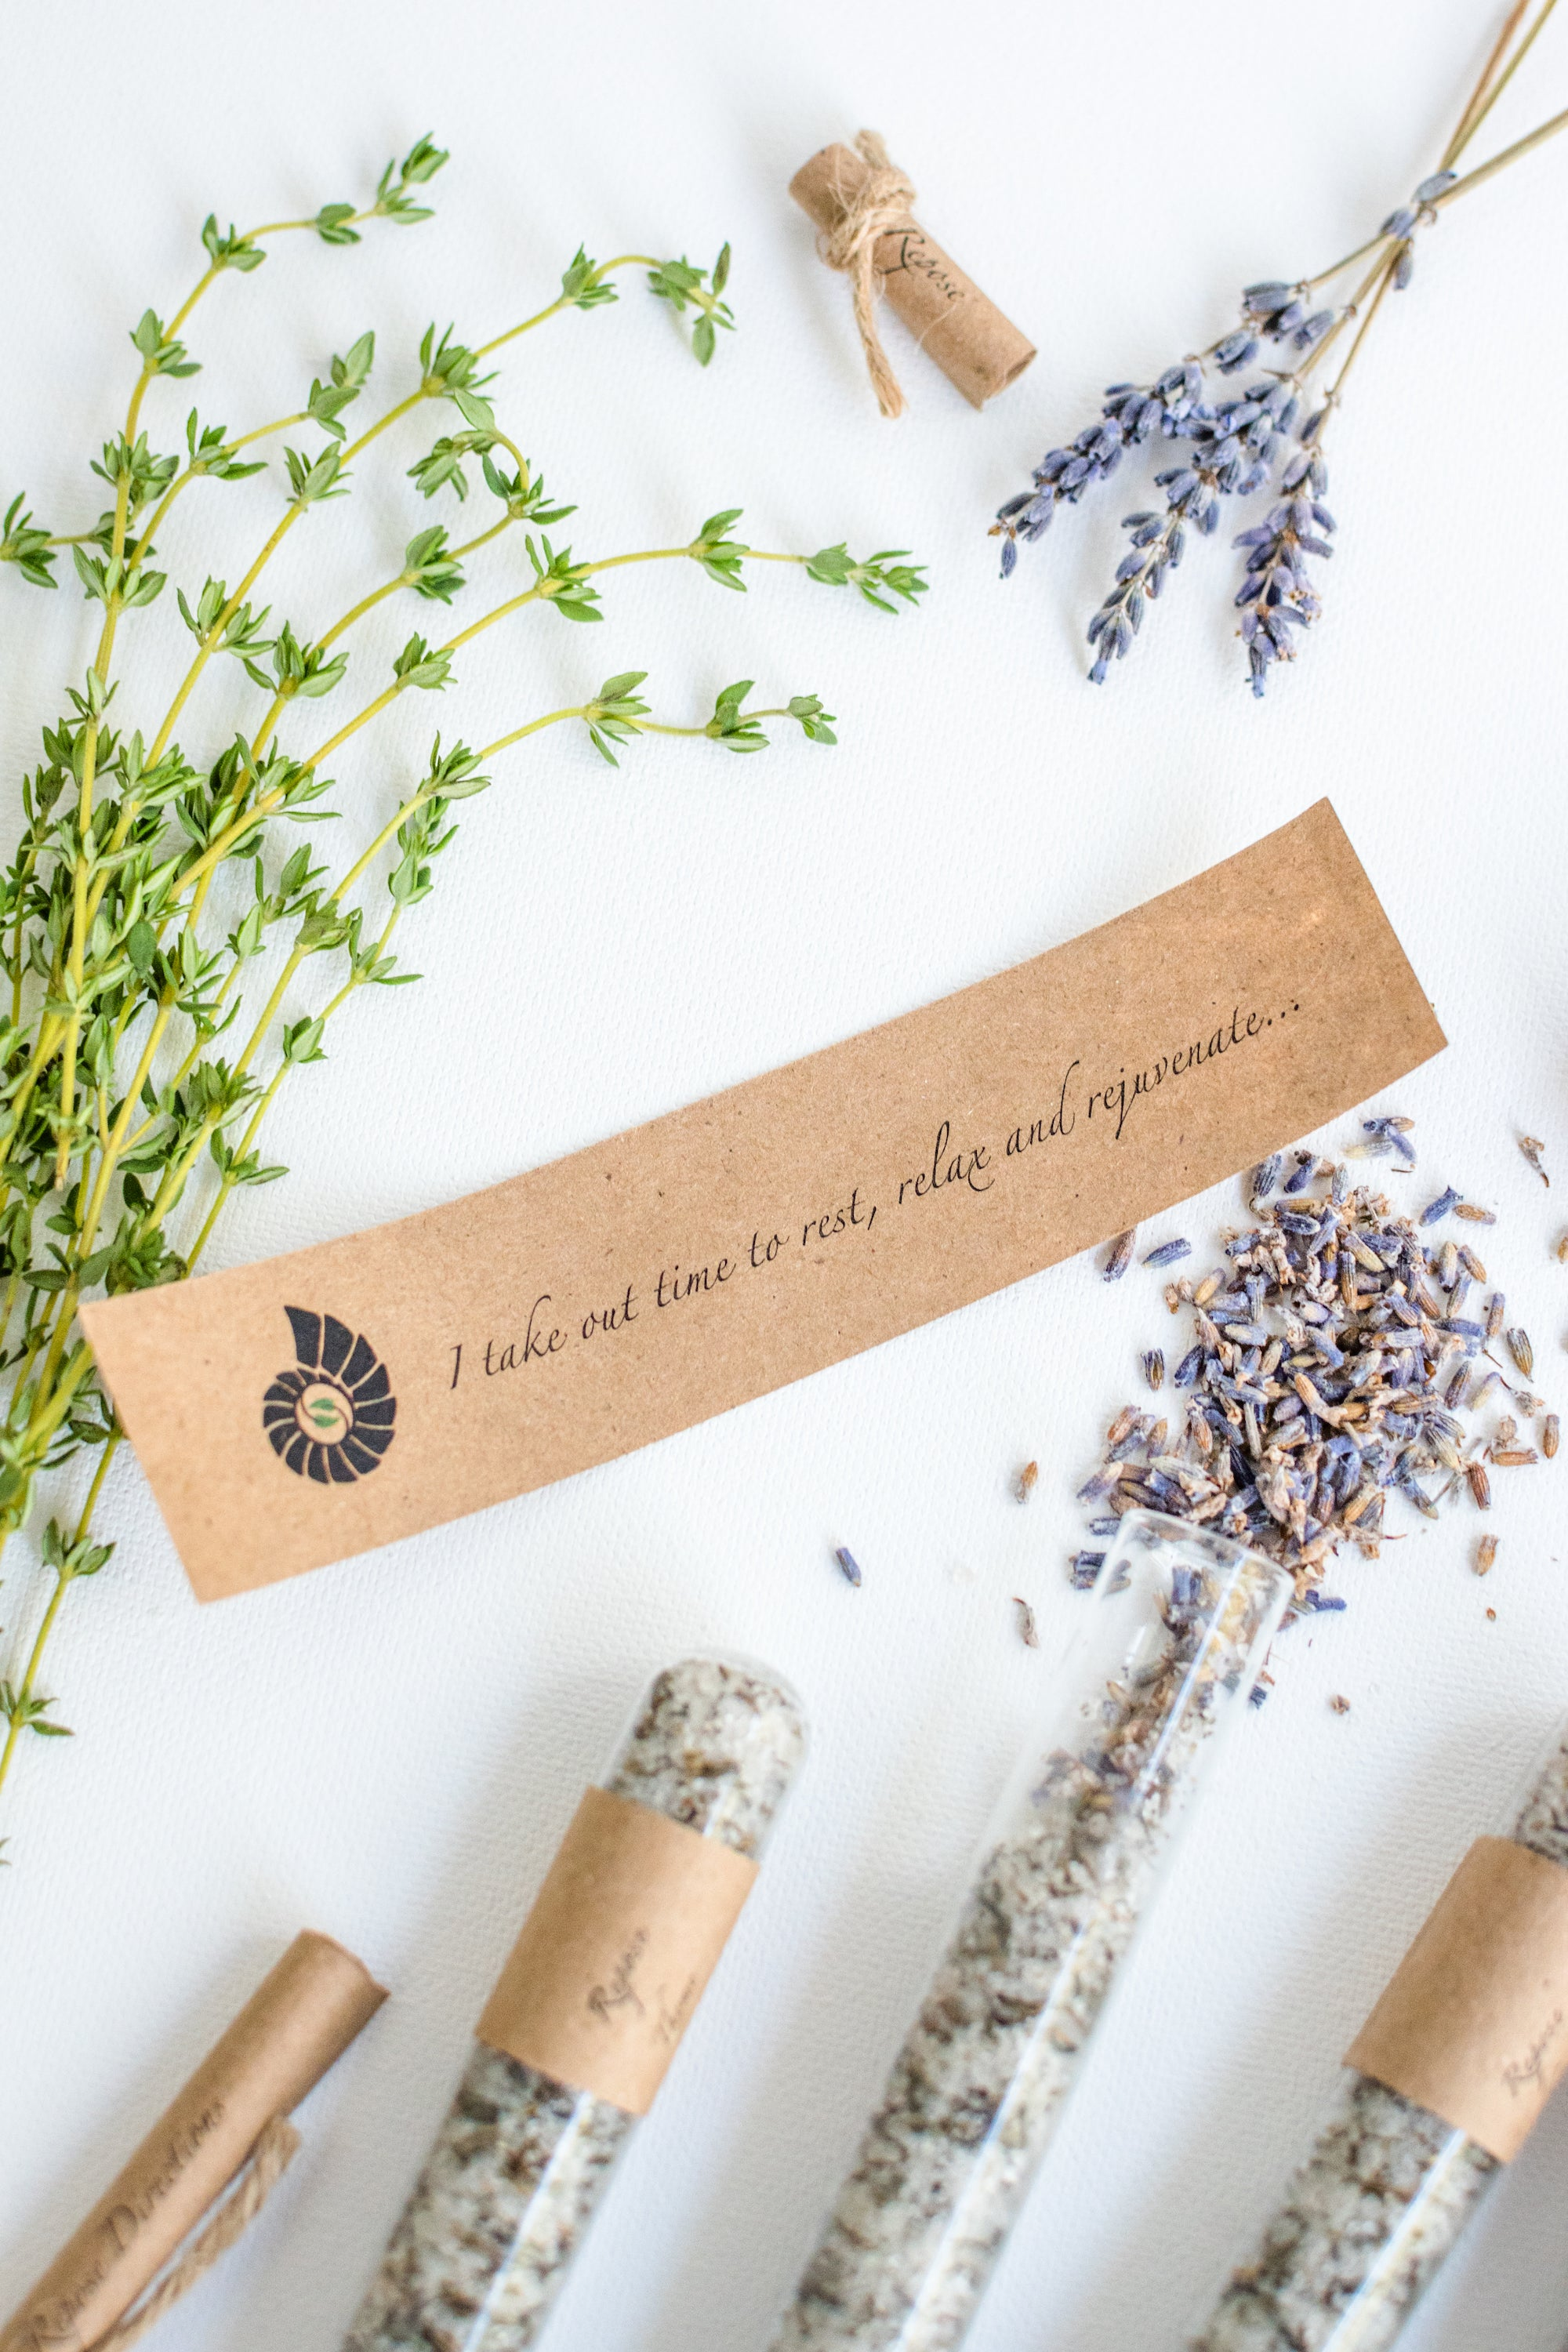 Truly Aesthetic Repose Thyme Lavender Bath Affirmations Bath Salts and Positive Affirmation Close Up